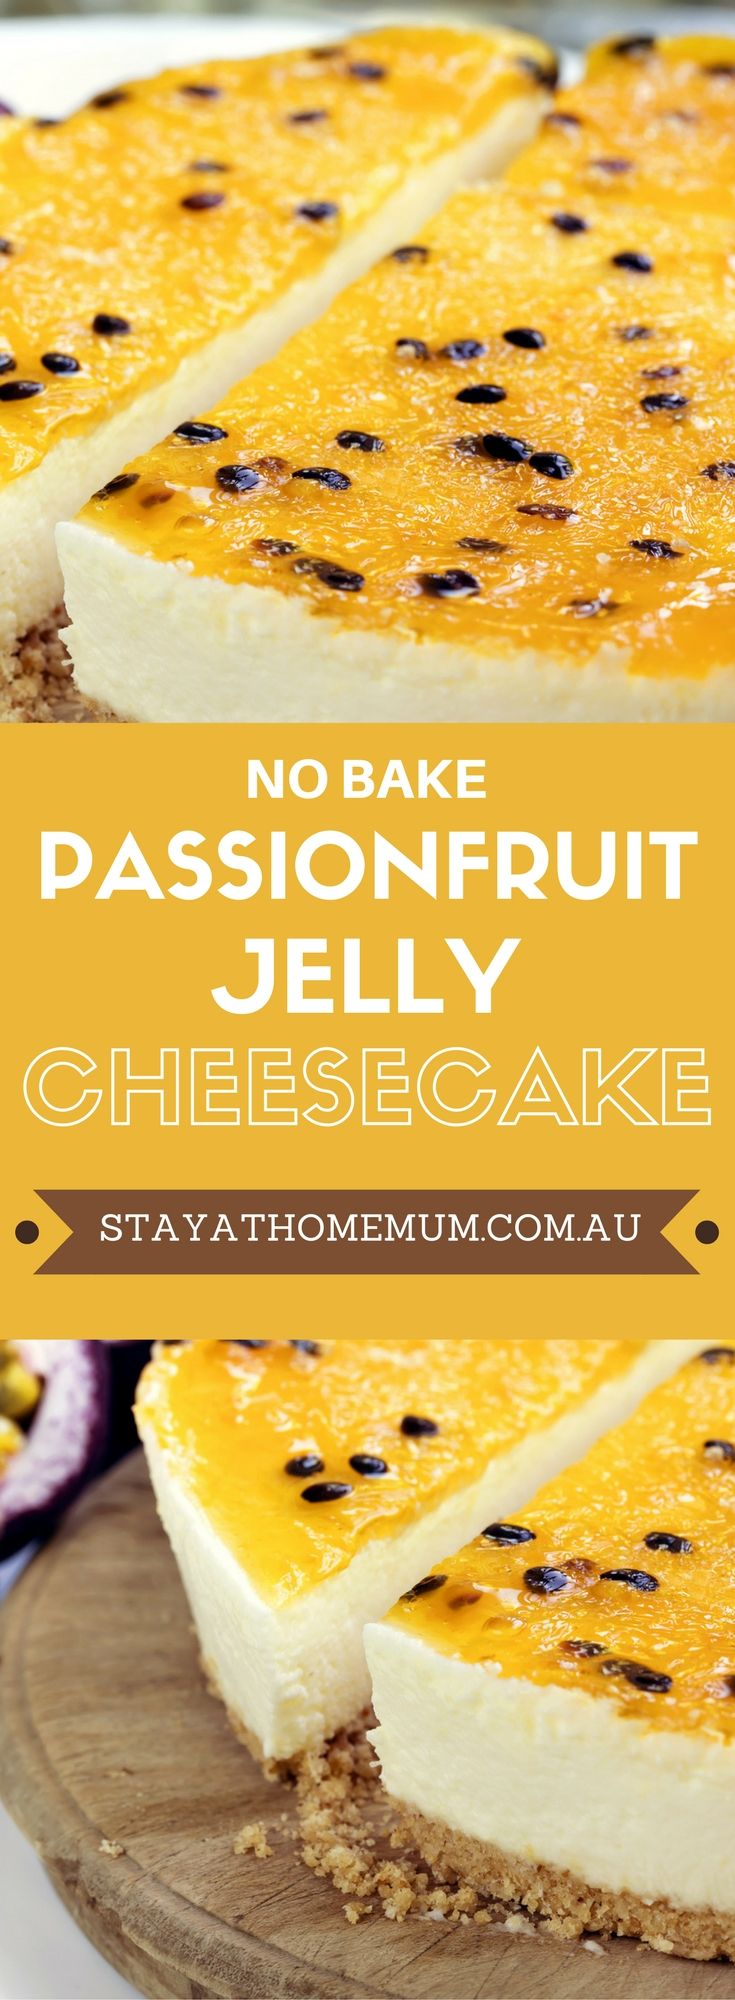 It's probably one of our favourite cheesecakes to be honest, and with lots of different textures it's a treat for your tastebuds.